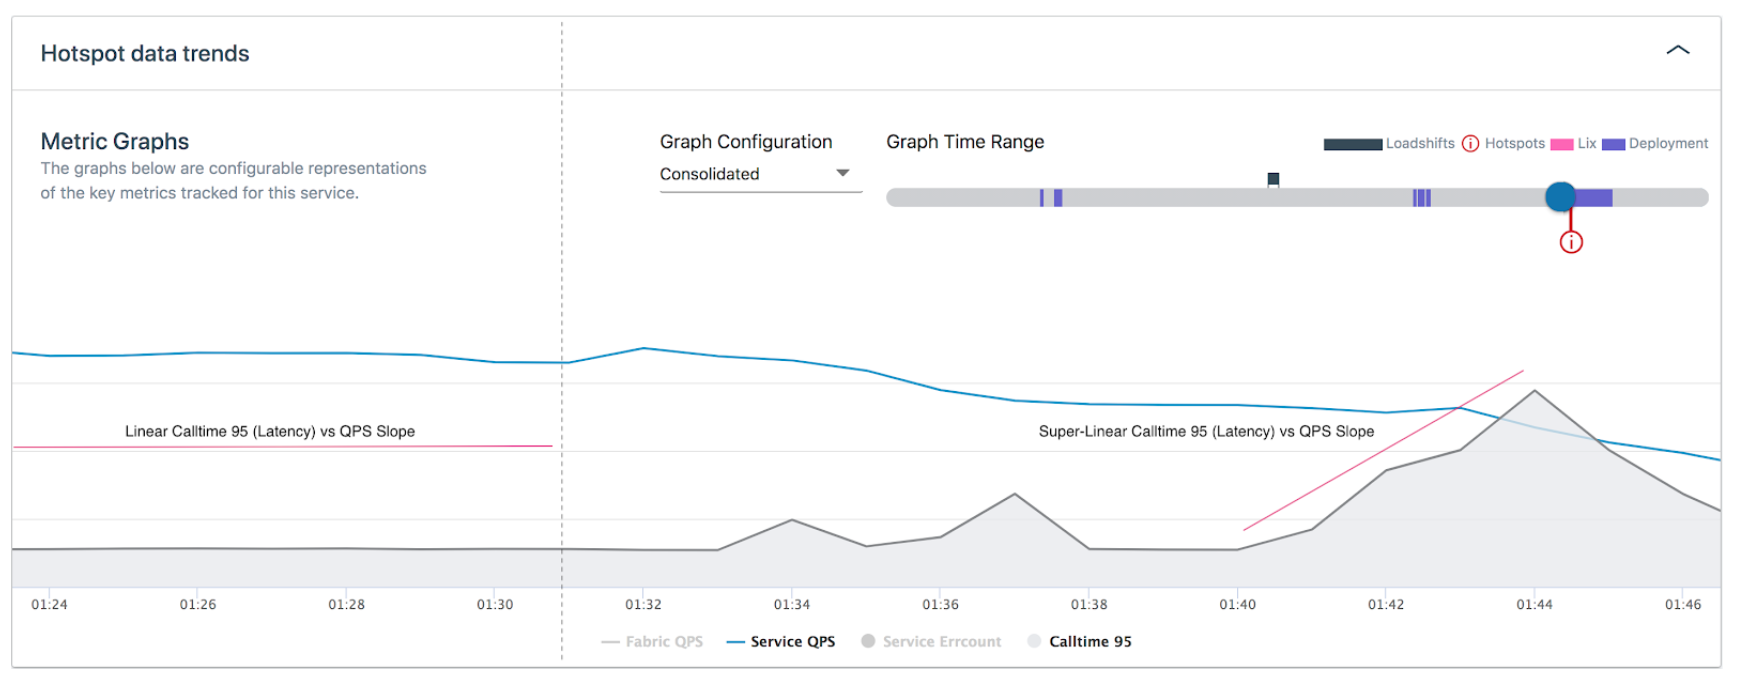 calltime-95-latency-vs-service-qps-slope-before-and-in-anomaly-window